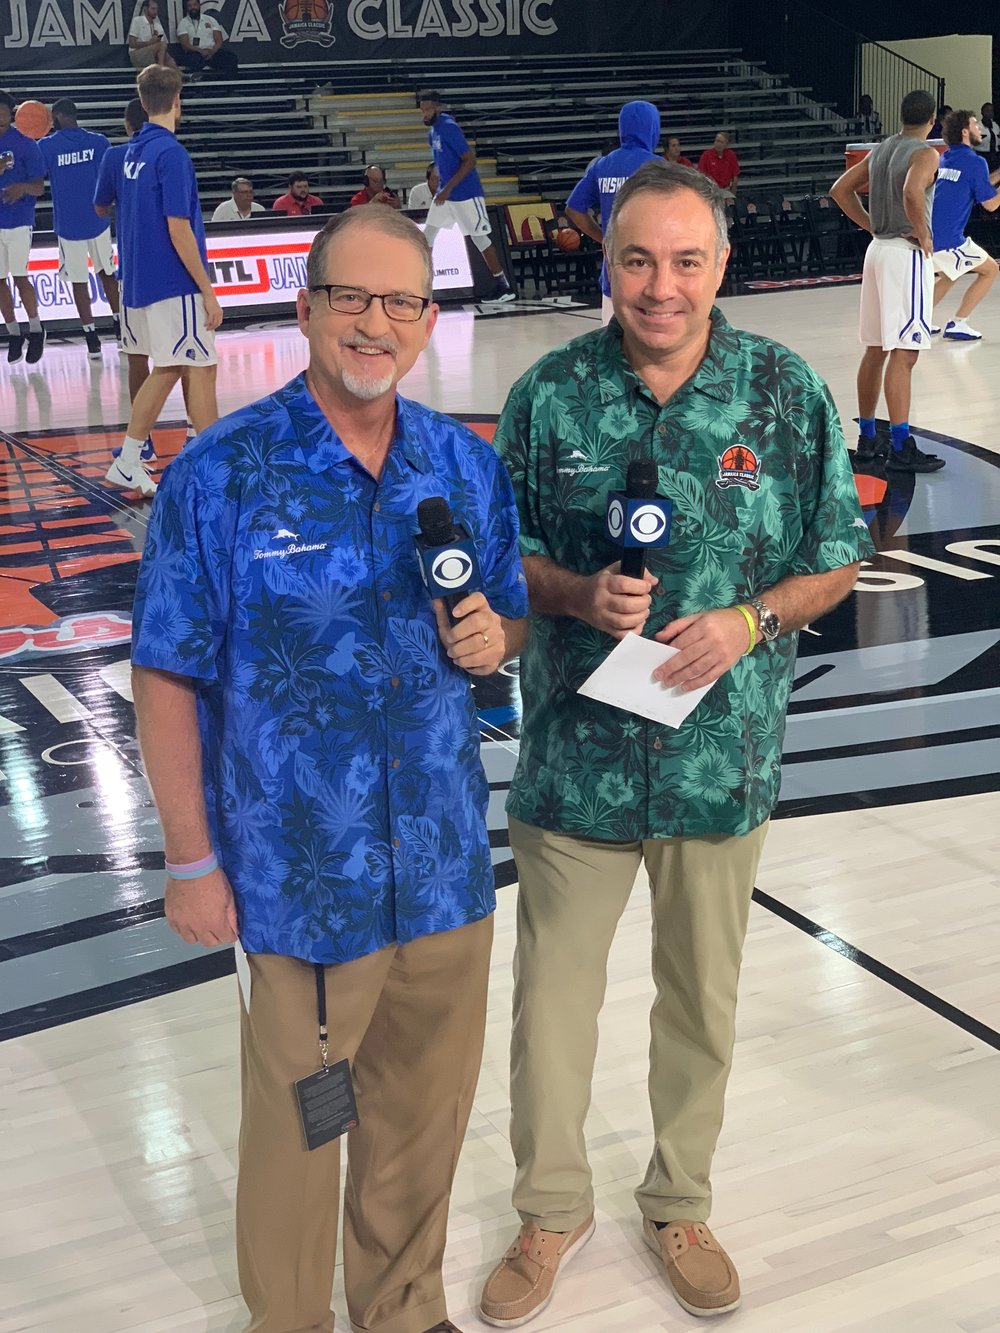 Along with Mark Wise at the 2018 Jamaica Classic in Montego Bay for CBS Sports Network.